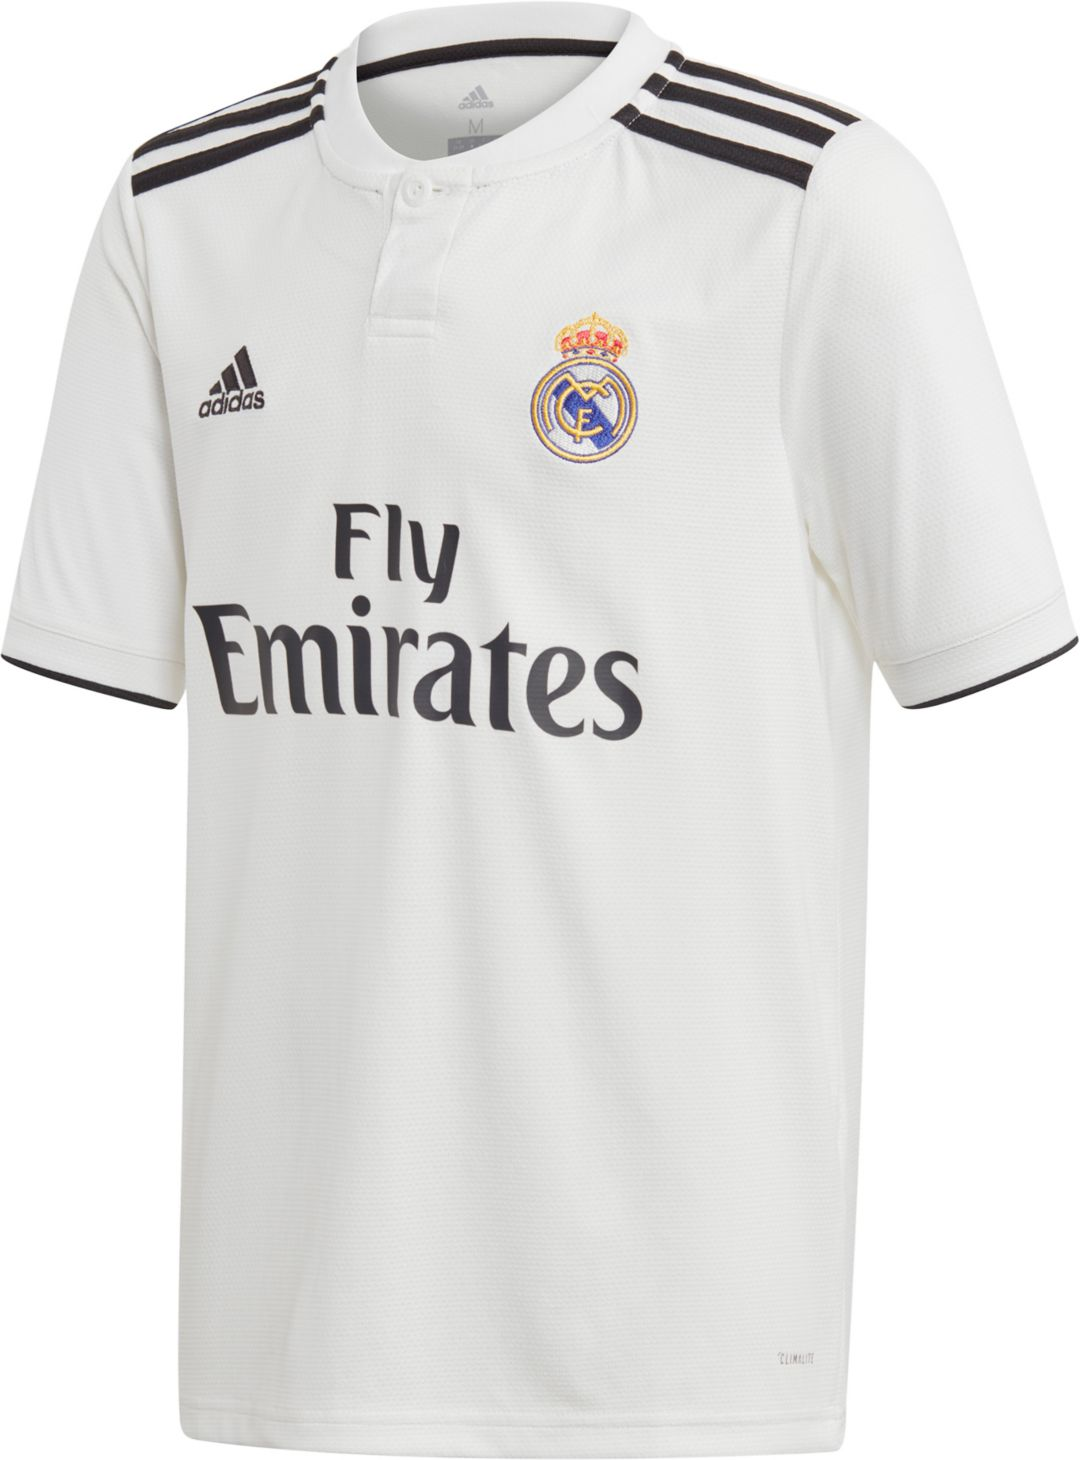 buy popular 80f6f c6925 adidas Youth Real Madrid 2018 Stadium Home Replica Jersey